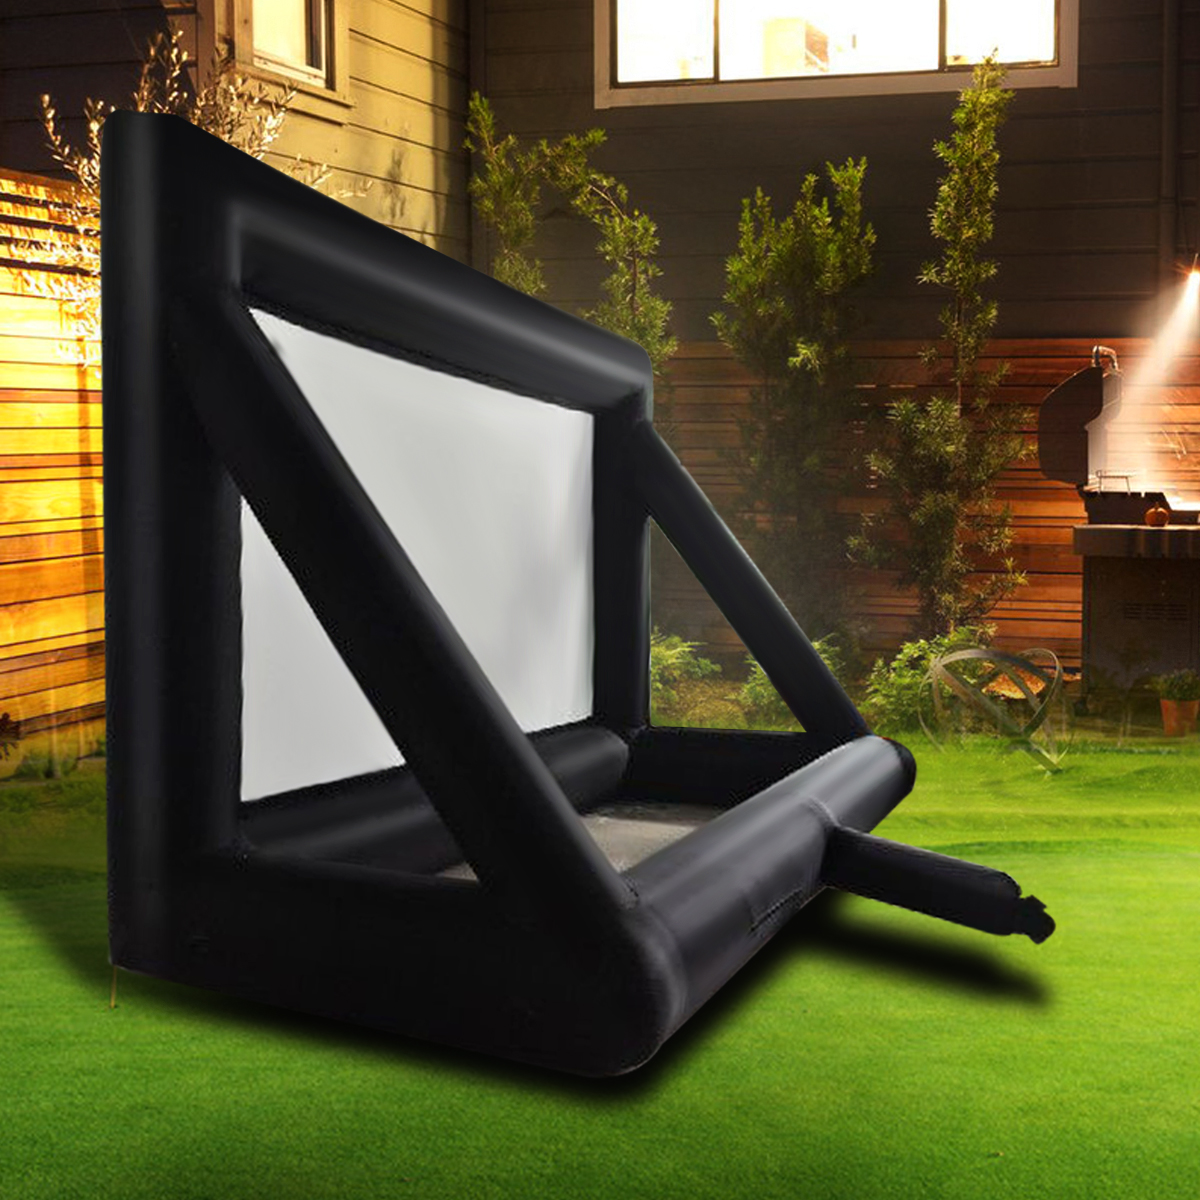 4.5x3.5M Inflatable Movie Screen Outdoor Cinema Projection Home Theatre